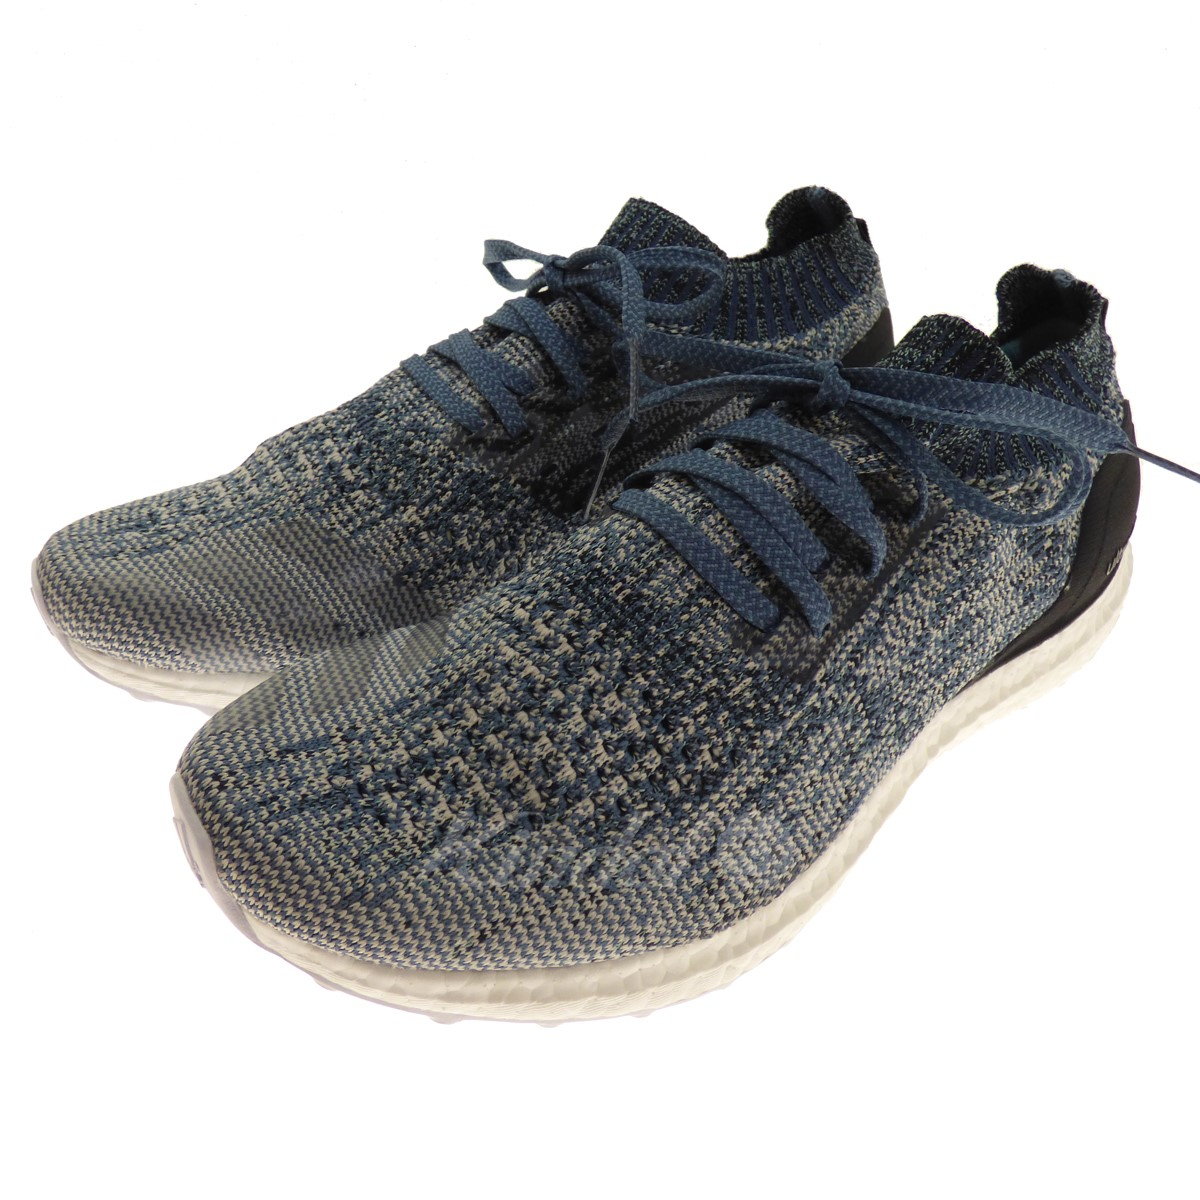 459a9daec36ed kindal  adidas UltraBOOST Uncaged Parley sneakers blue size  28. 0 ...